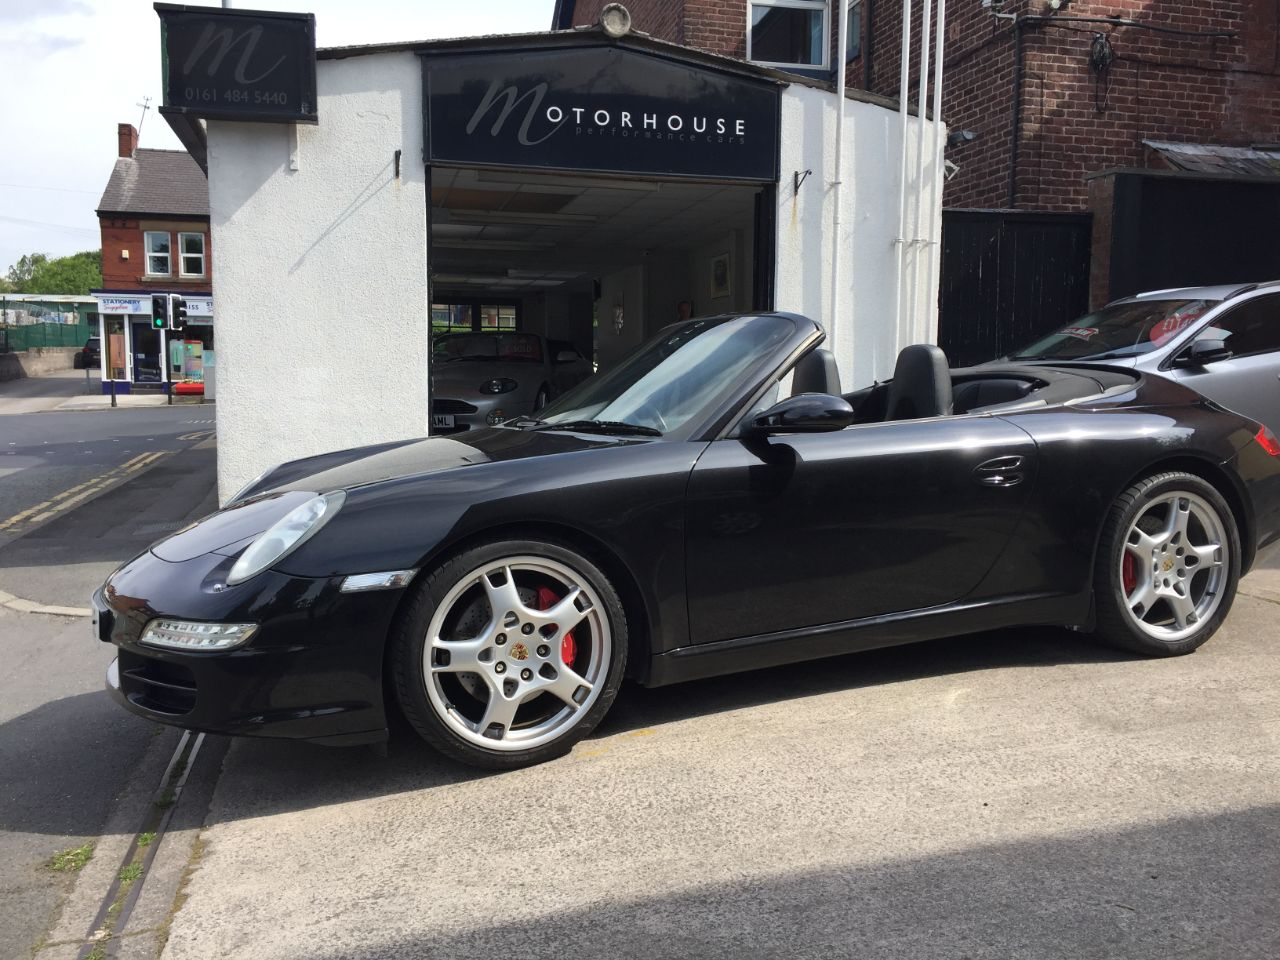 Porsche 911 3.8 Carrera S Convertible Petrol Black at Motorhouse Cheshire Stockport